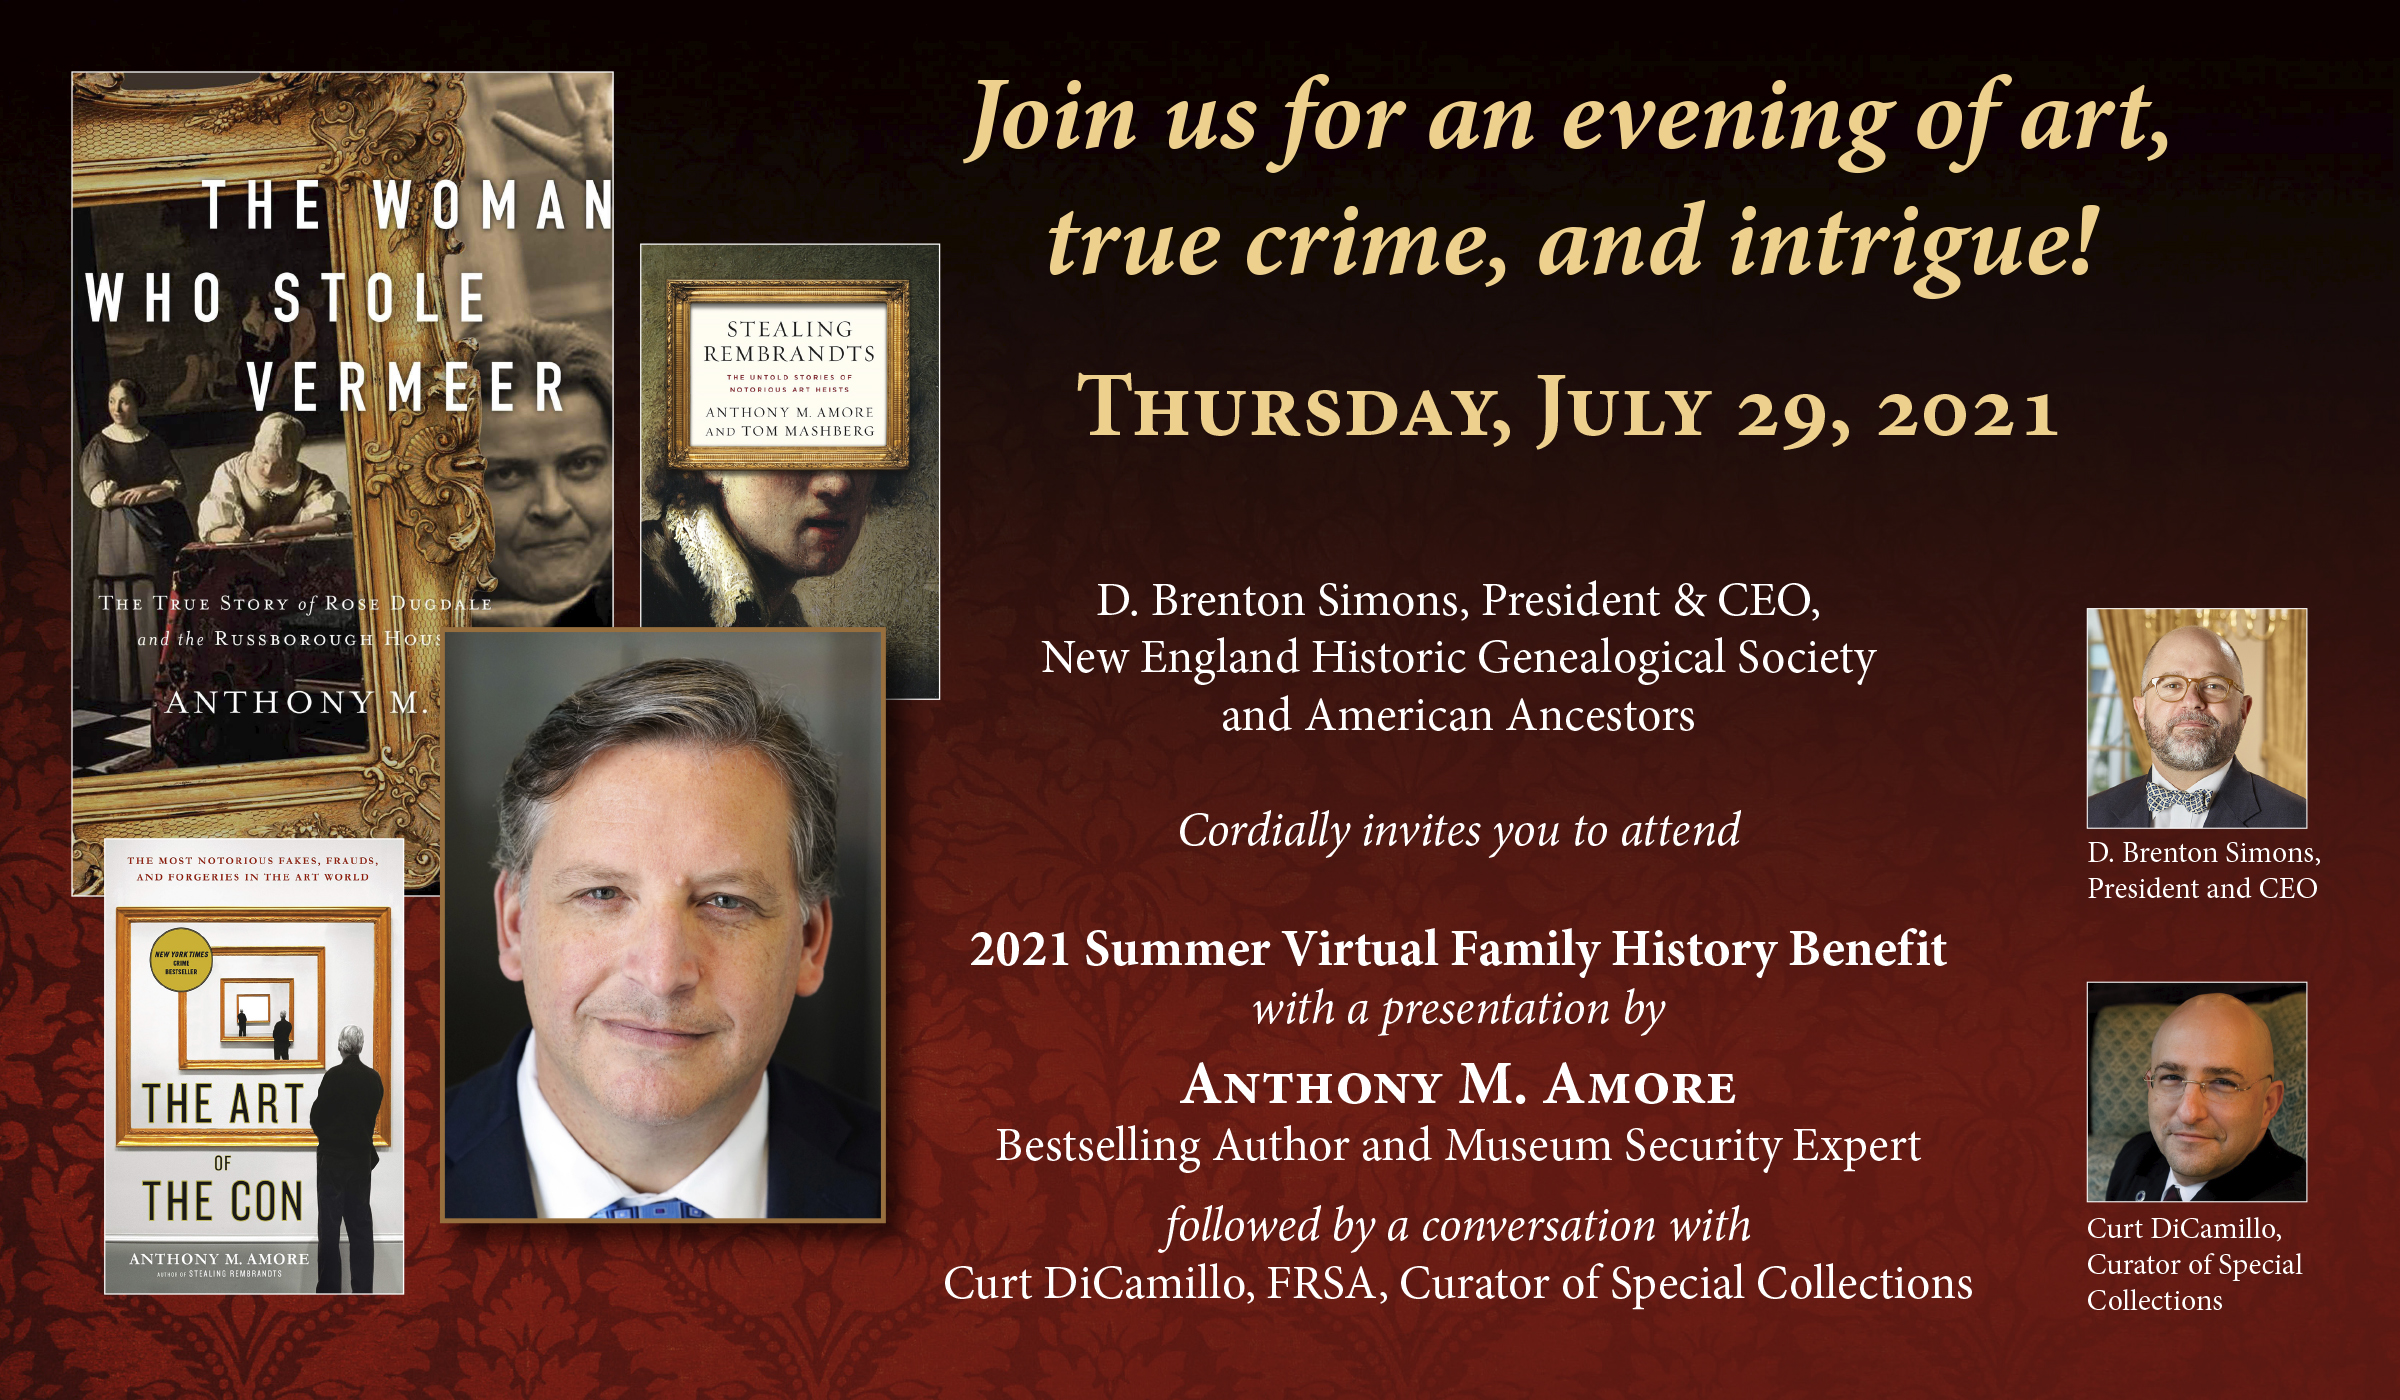 Join us for an evening of art, true crime, and intrigue! 2021 Summer Virtual Family History Benefit, July 29